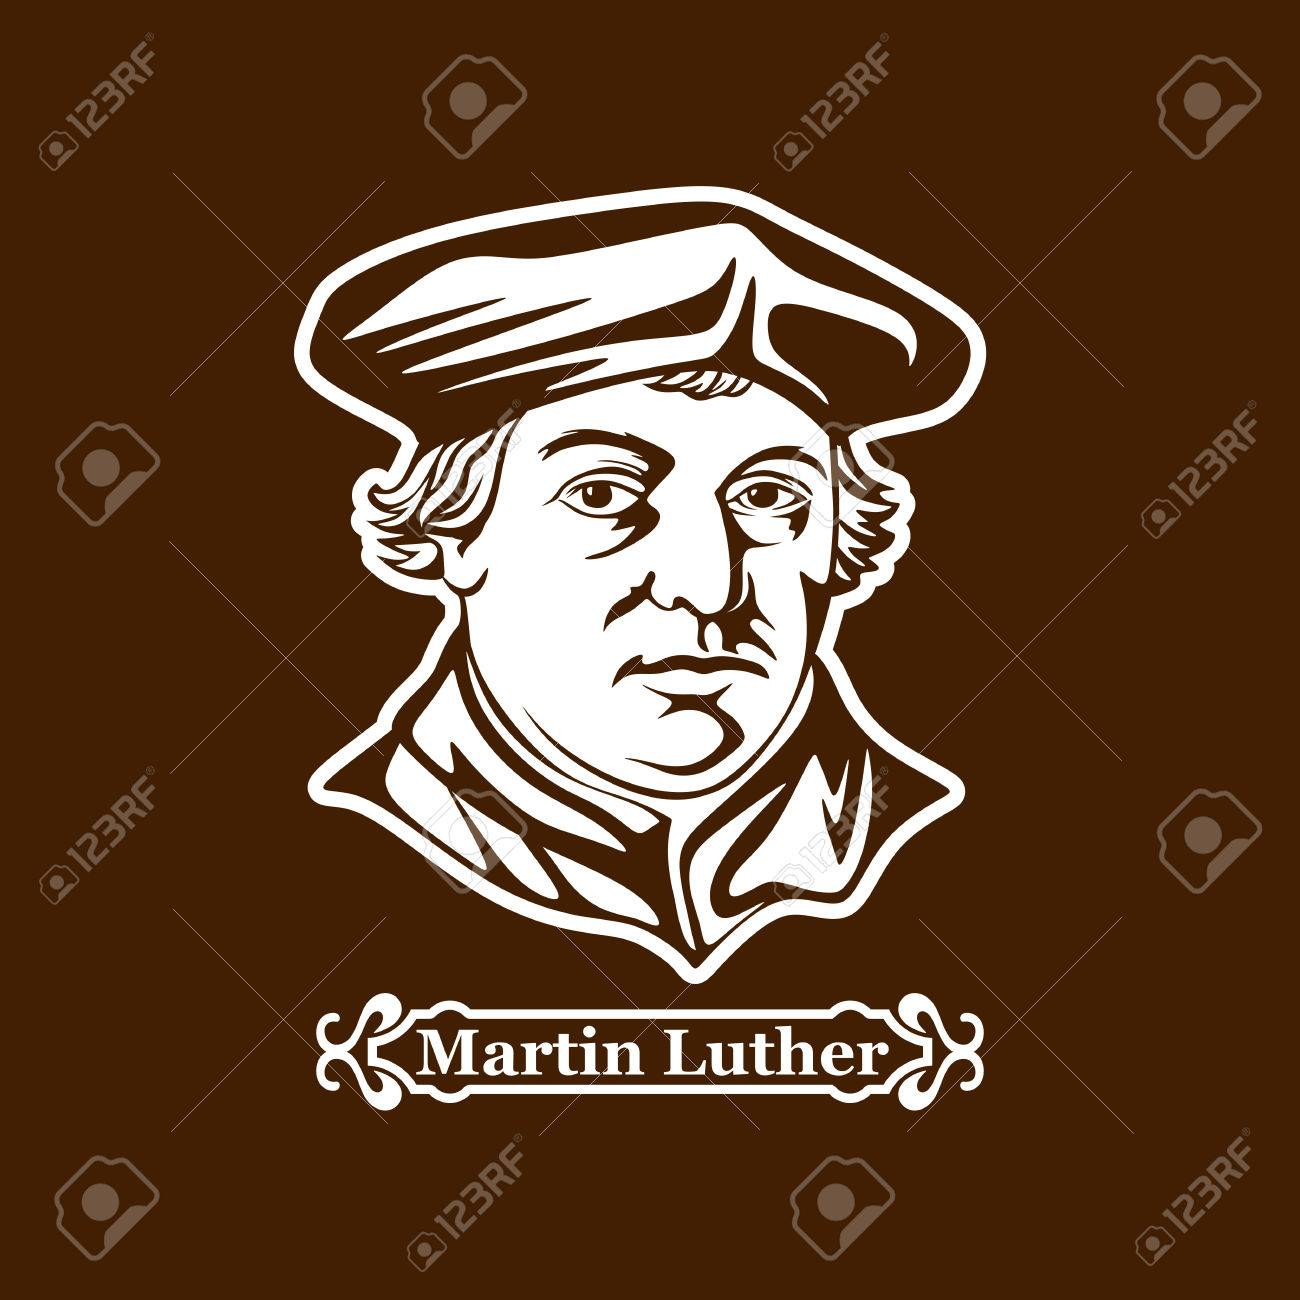 Martin Luther. Protestantism. Leaders of the European Reformation. - 87349279